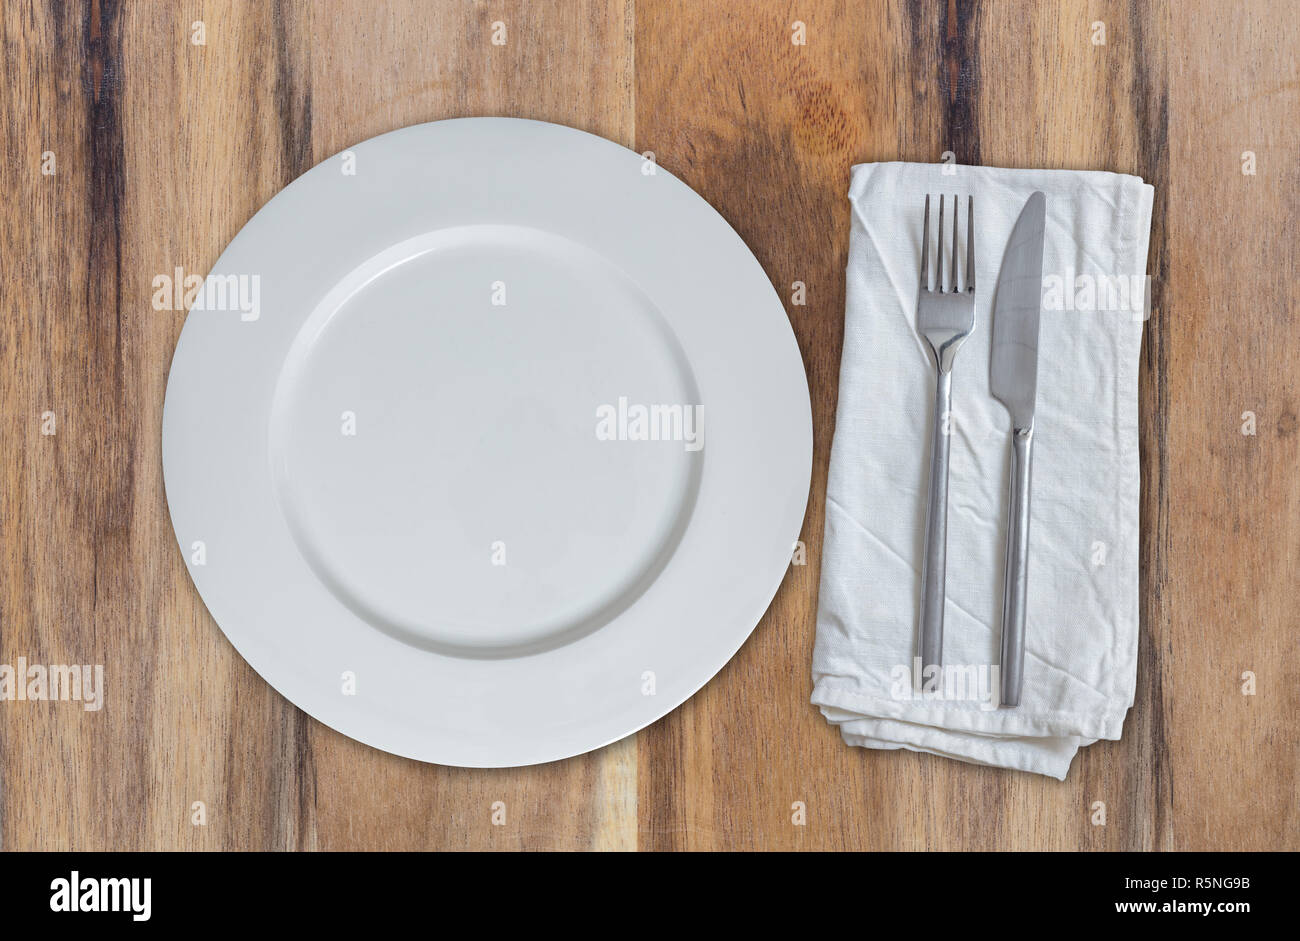 empty dish with cutlery on acacia wood. aerial view Stock Photo